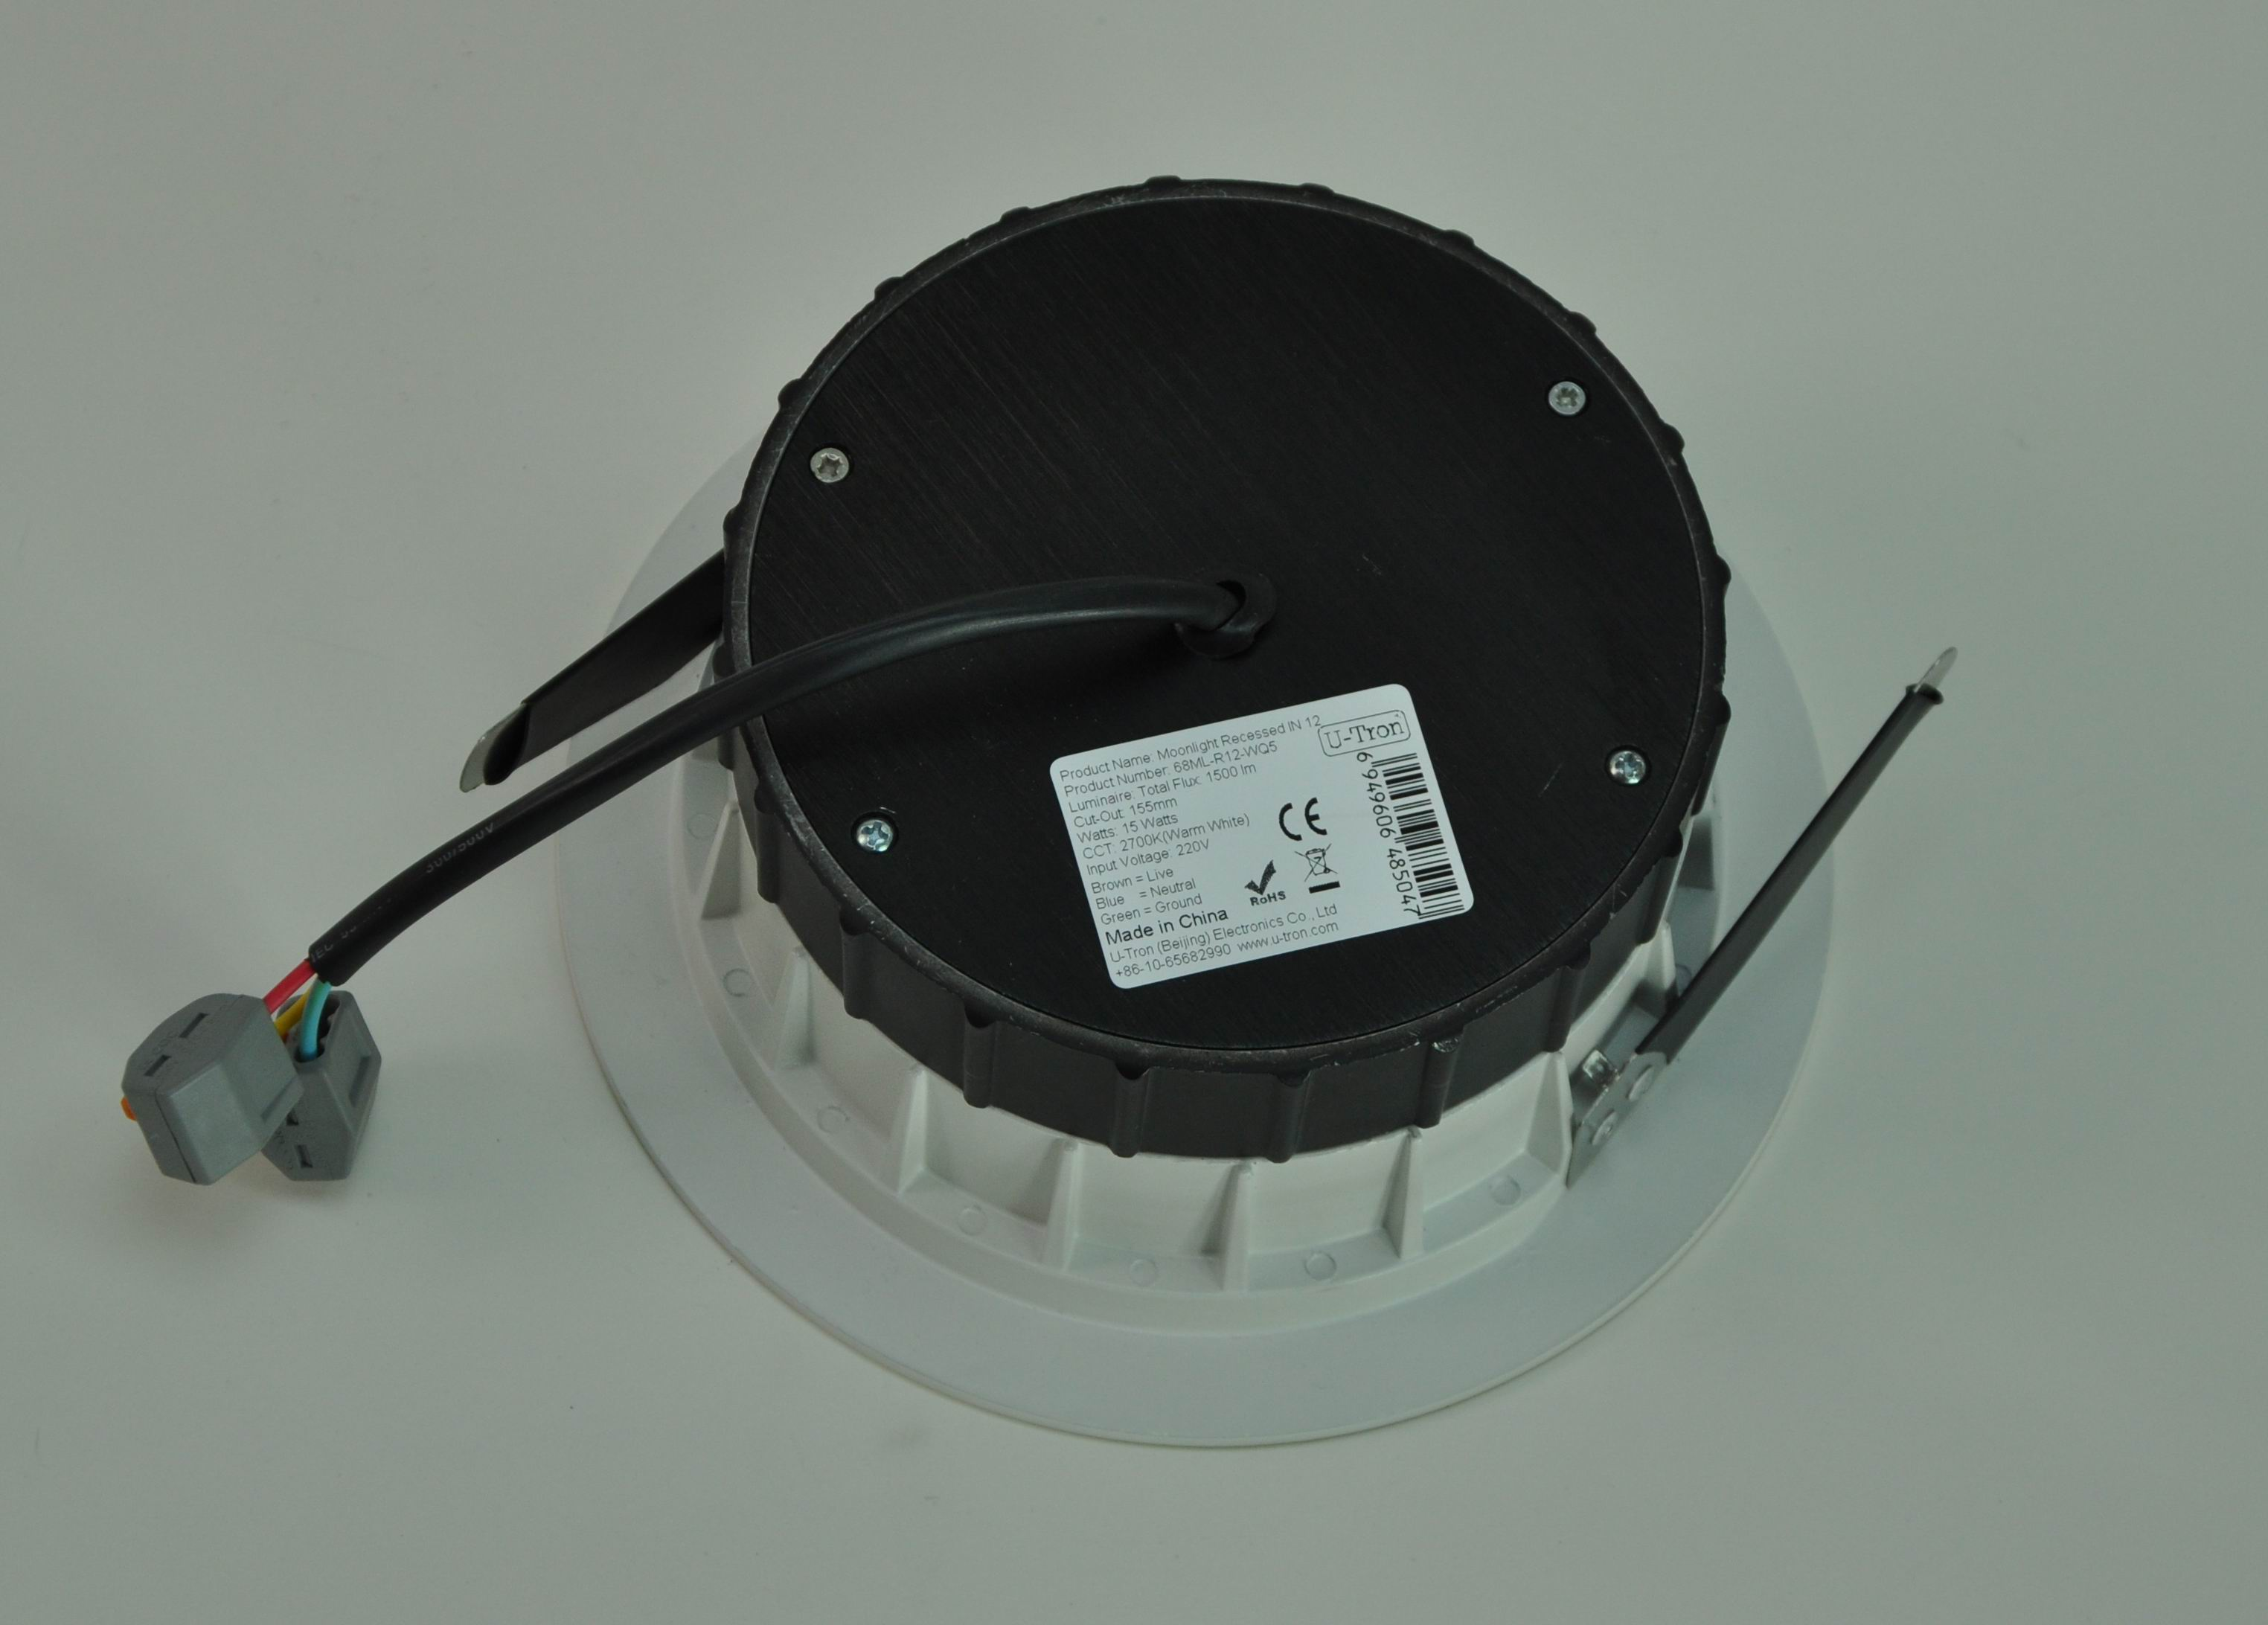 Moonlight Recessed Internal PSU 12 2